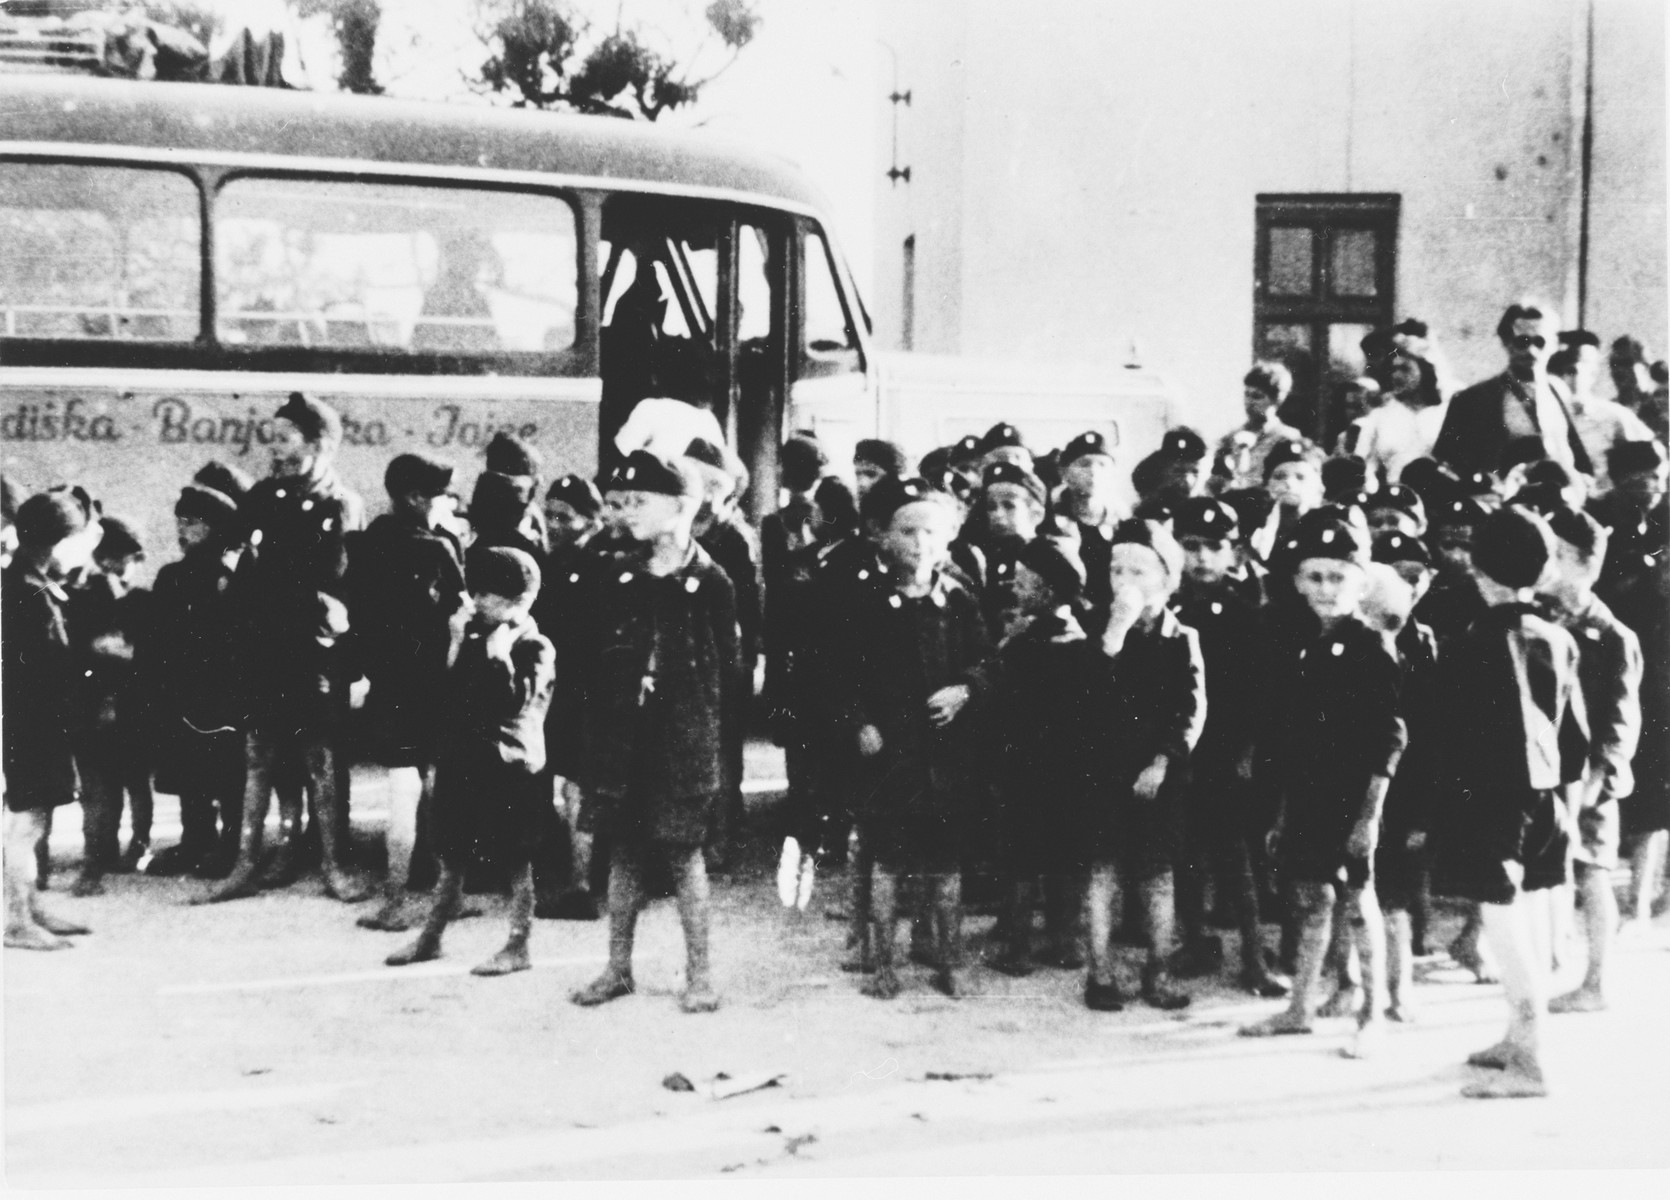 A group of young Serbian children from the Kozara region who are dressed in Ustasa uniform, are assembled next to a bus in the Stara Gradiska concentration camp.  The children were called Lubruric's Little Serbs after Maks Lubruric, the commandant of the Jasenovac concentration camp.  Dressing the imprisoned children in Ustasa uniforms was part of the Croatian regime's effort to reeducate the Serbian boys from the Kozara region.